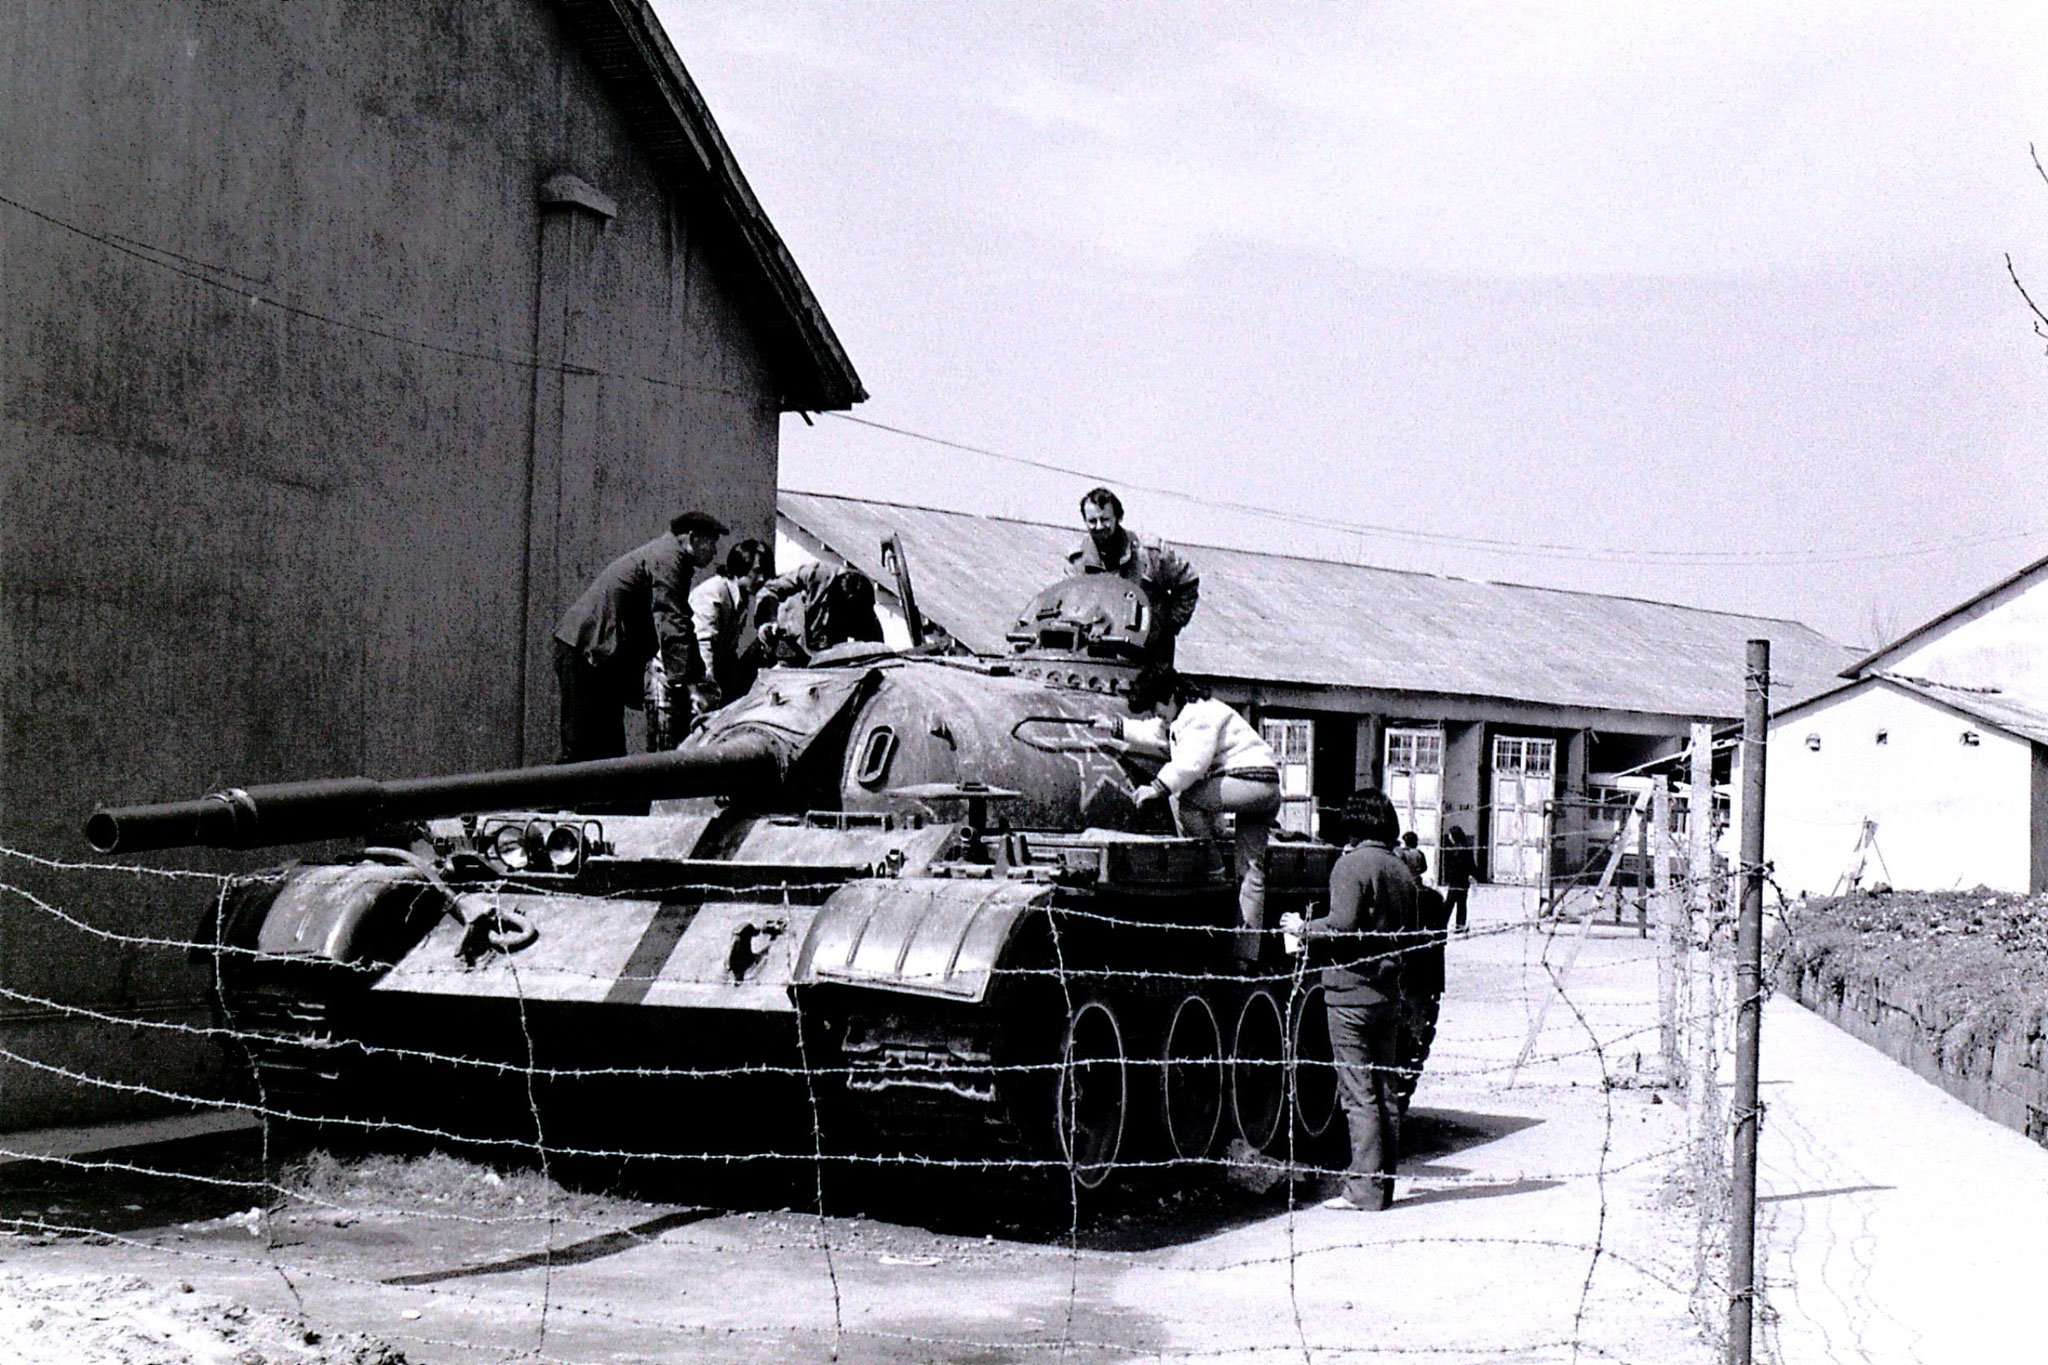 26/3/1989: 34: Hangzhou R on tank at Lin Biao museum